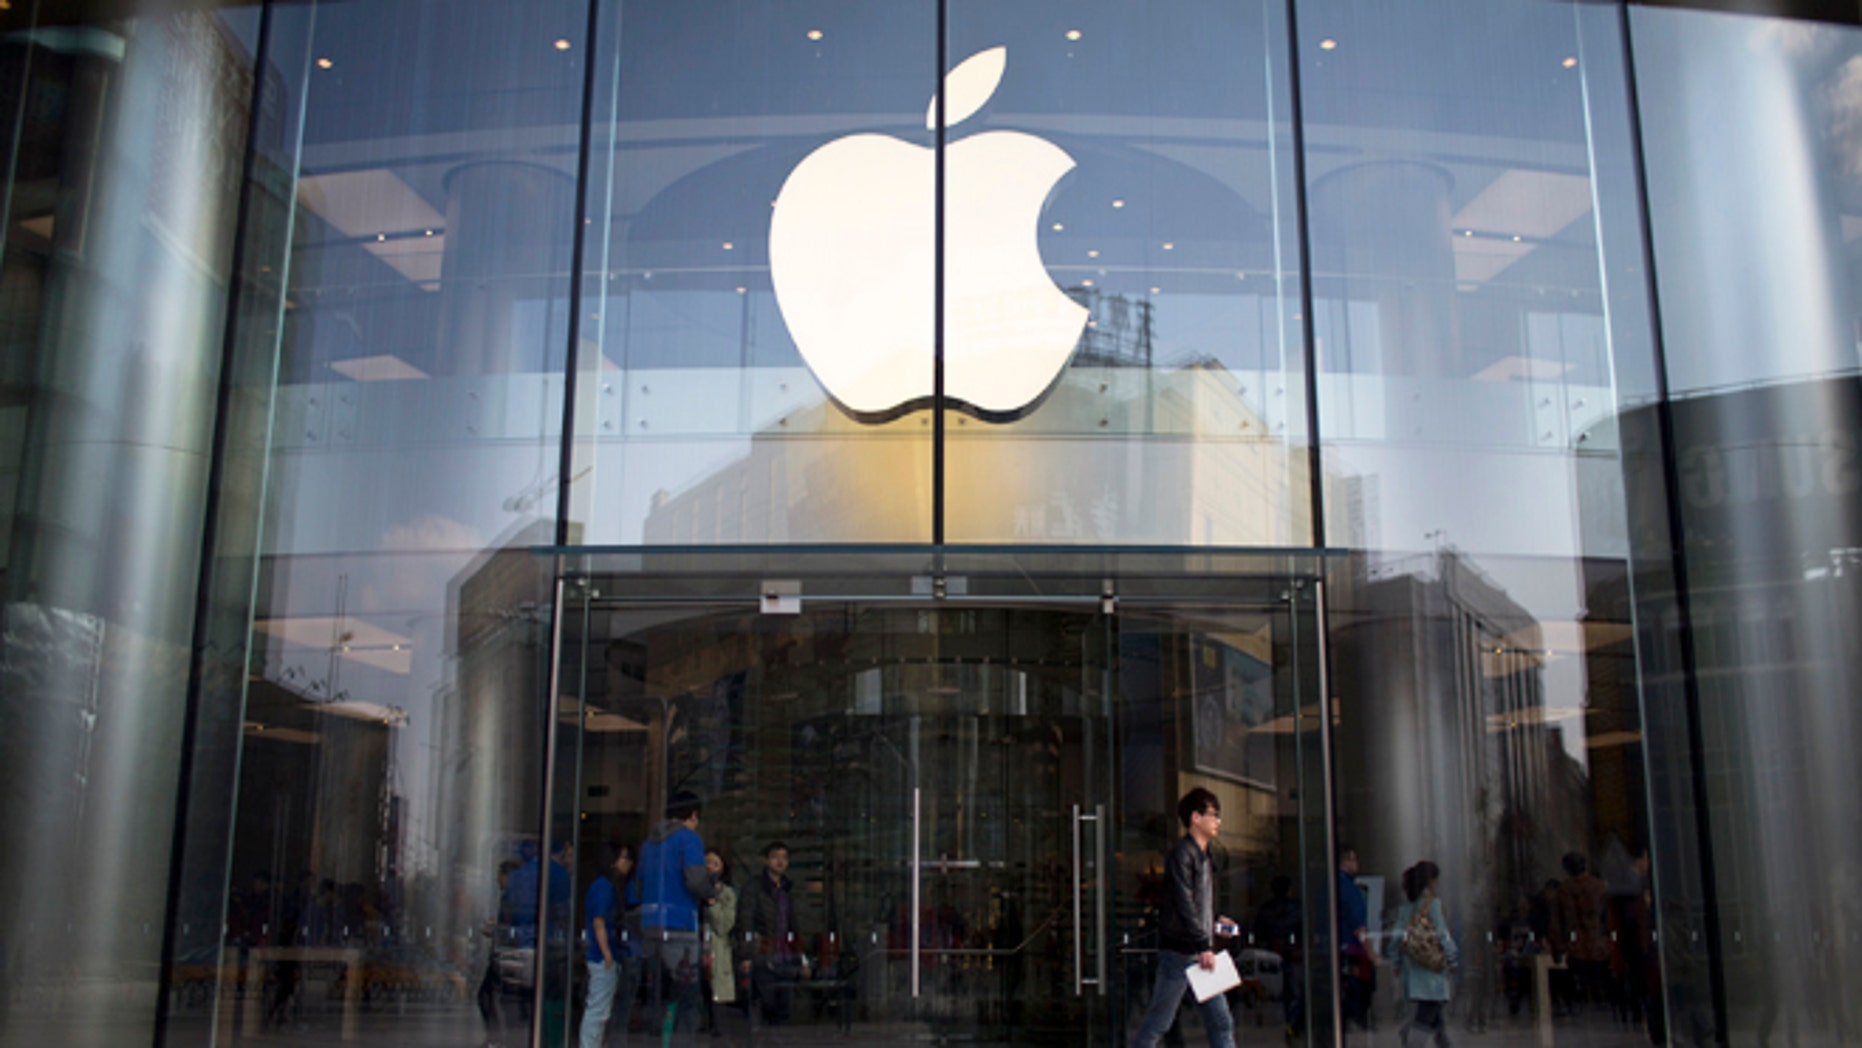 Sinking stock prices mean Apple has -- for now -- lost its position as the world's most valuable publicly traded company to Exxon Mobil.